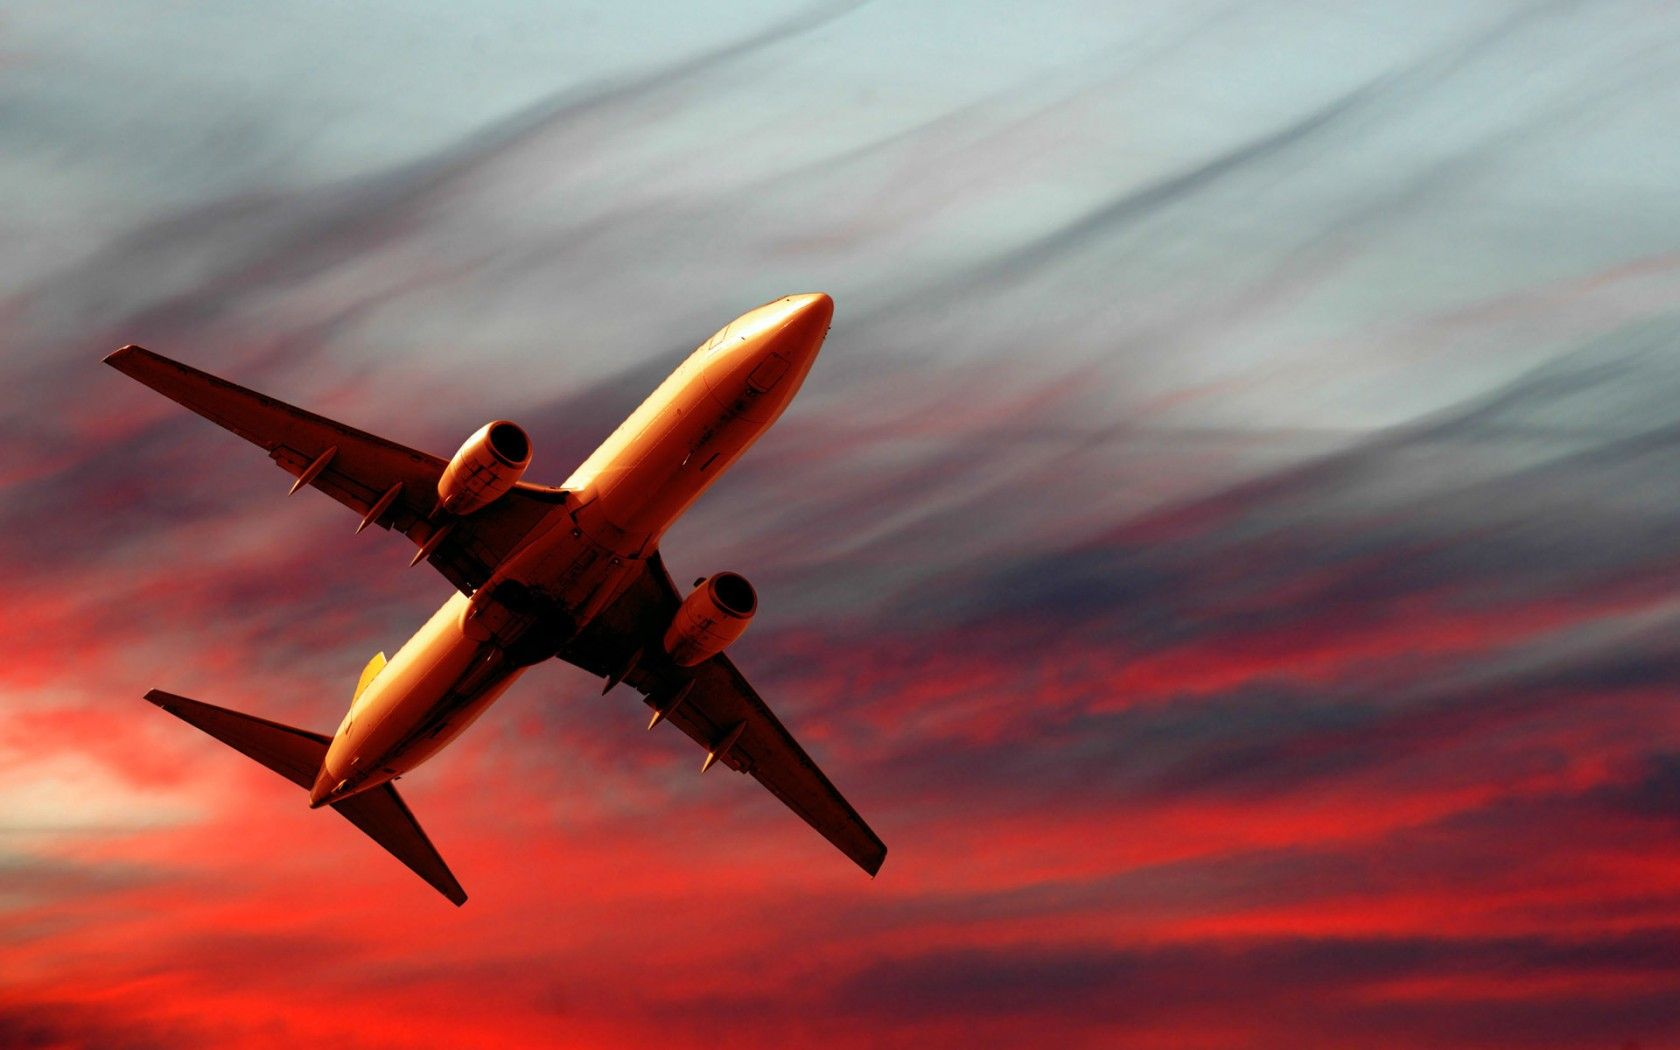 A Plane Taking Off Images 1